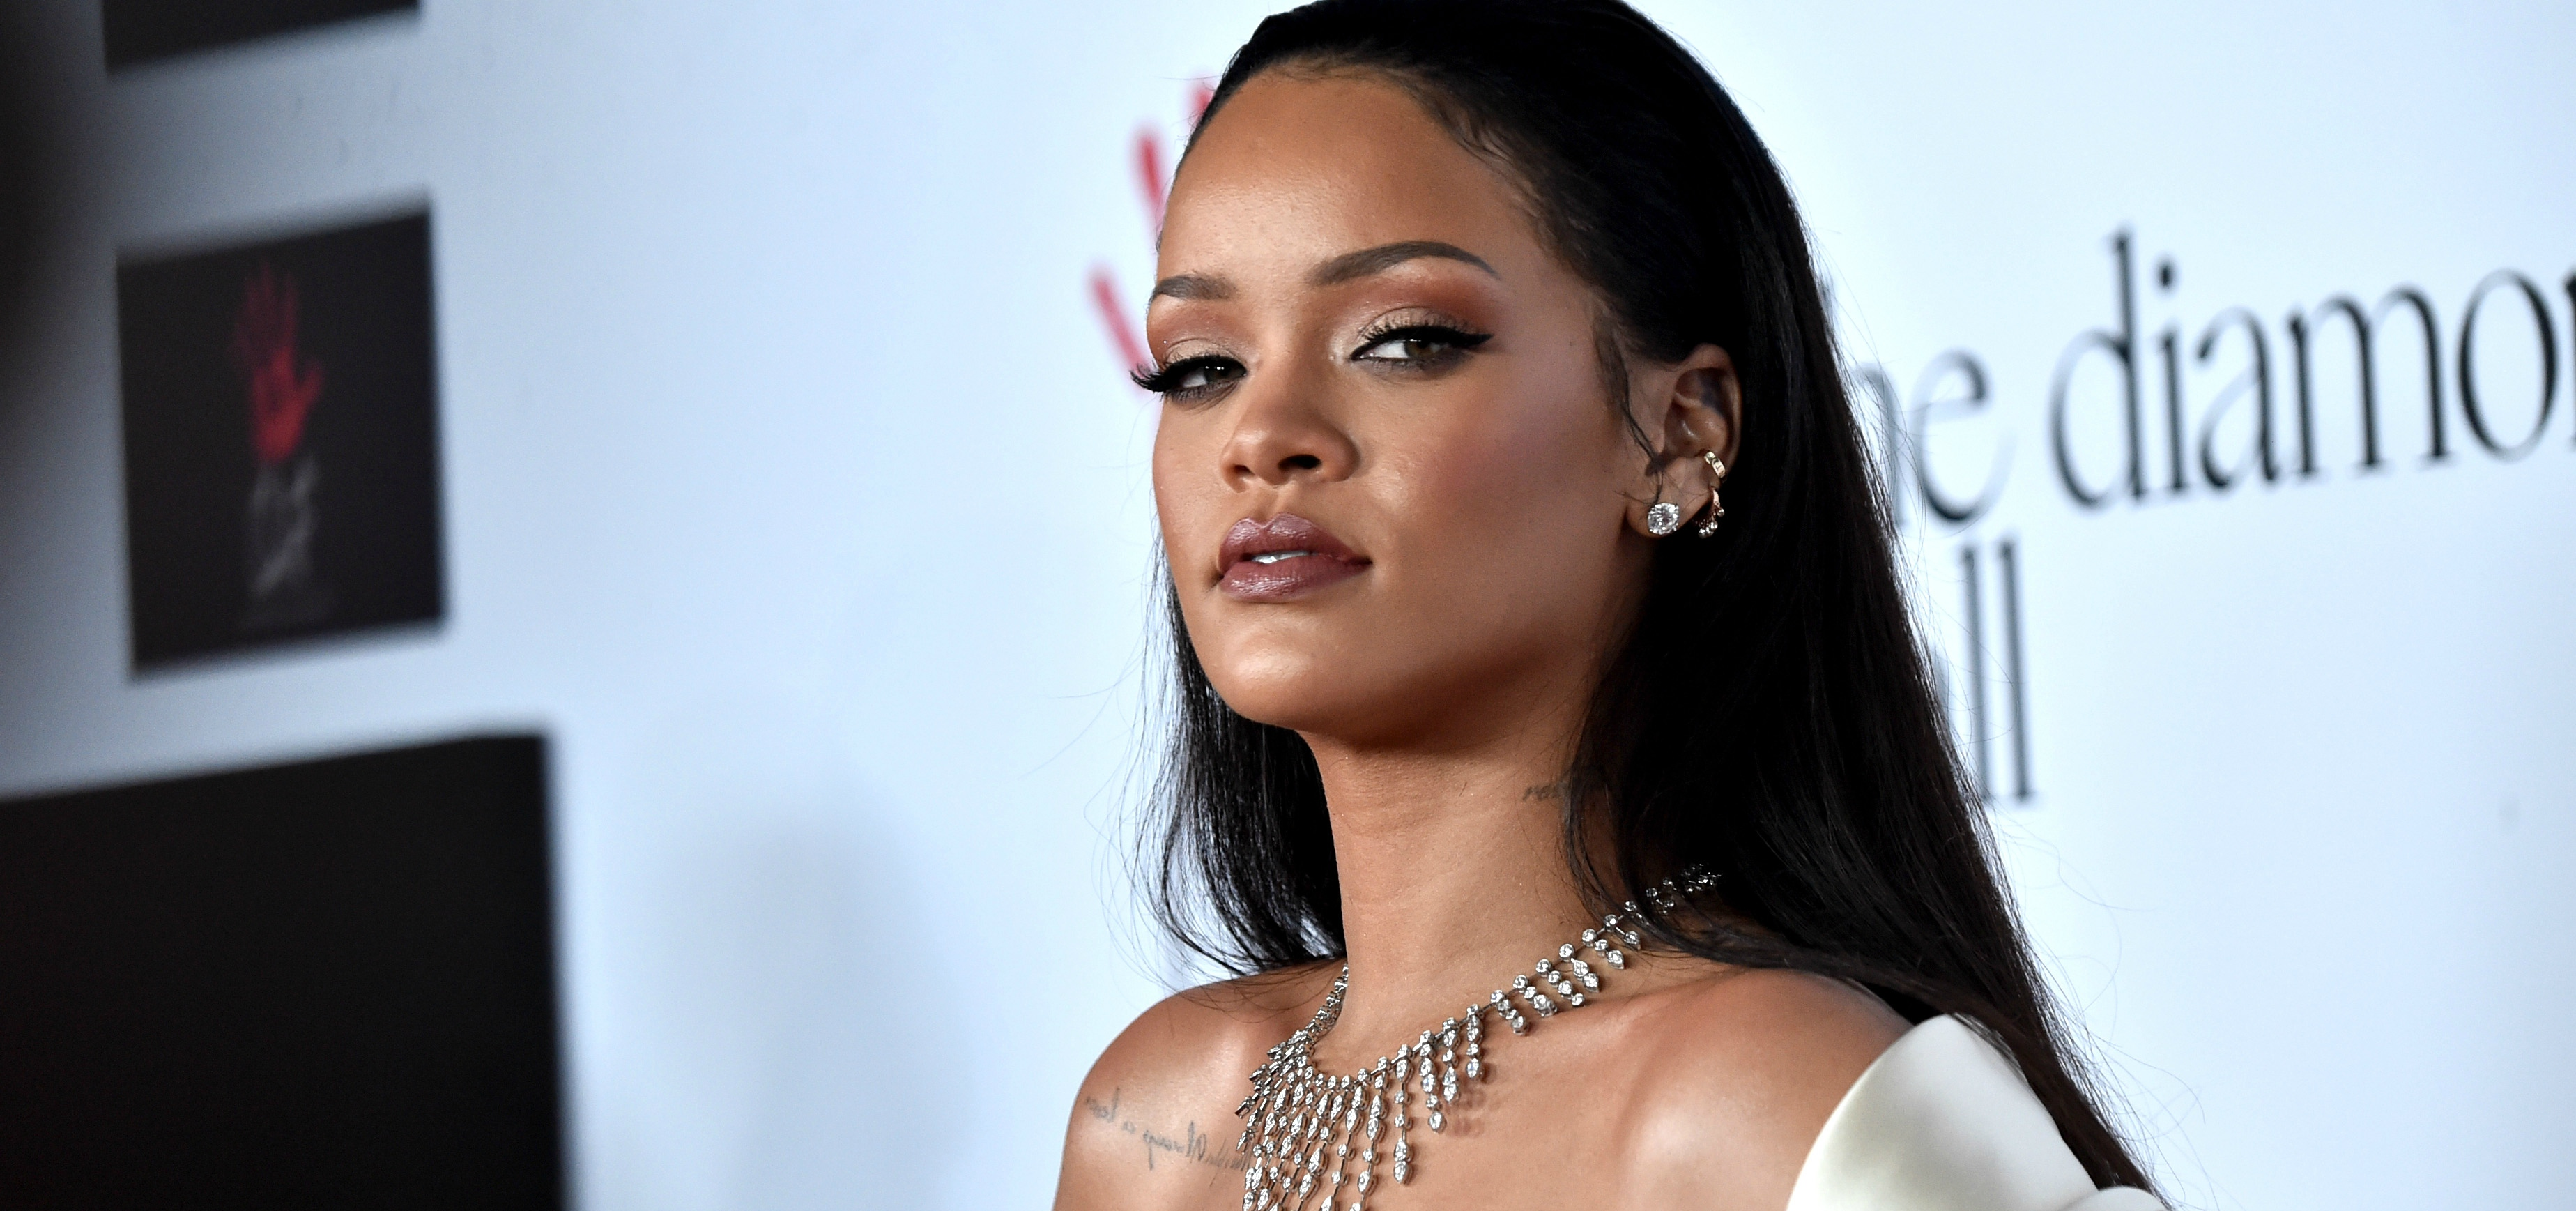 Rihanna is the Humanitarian Pop Star We Never Knew We Needed